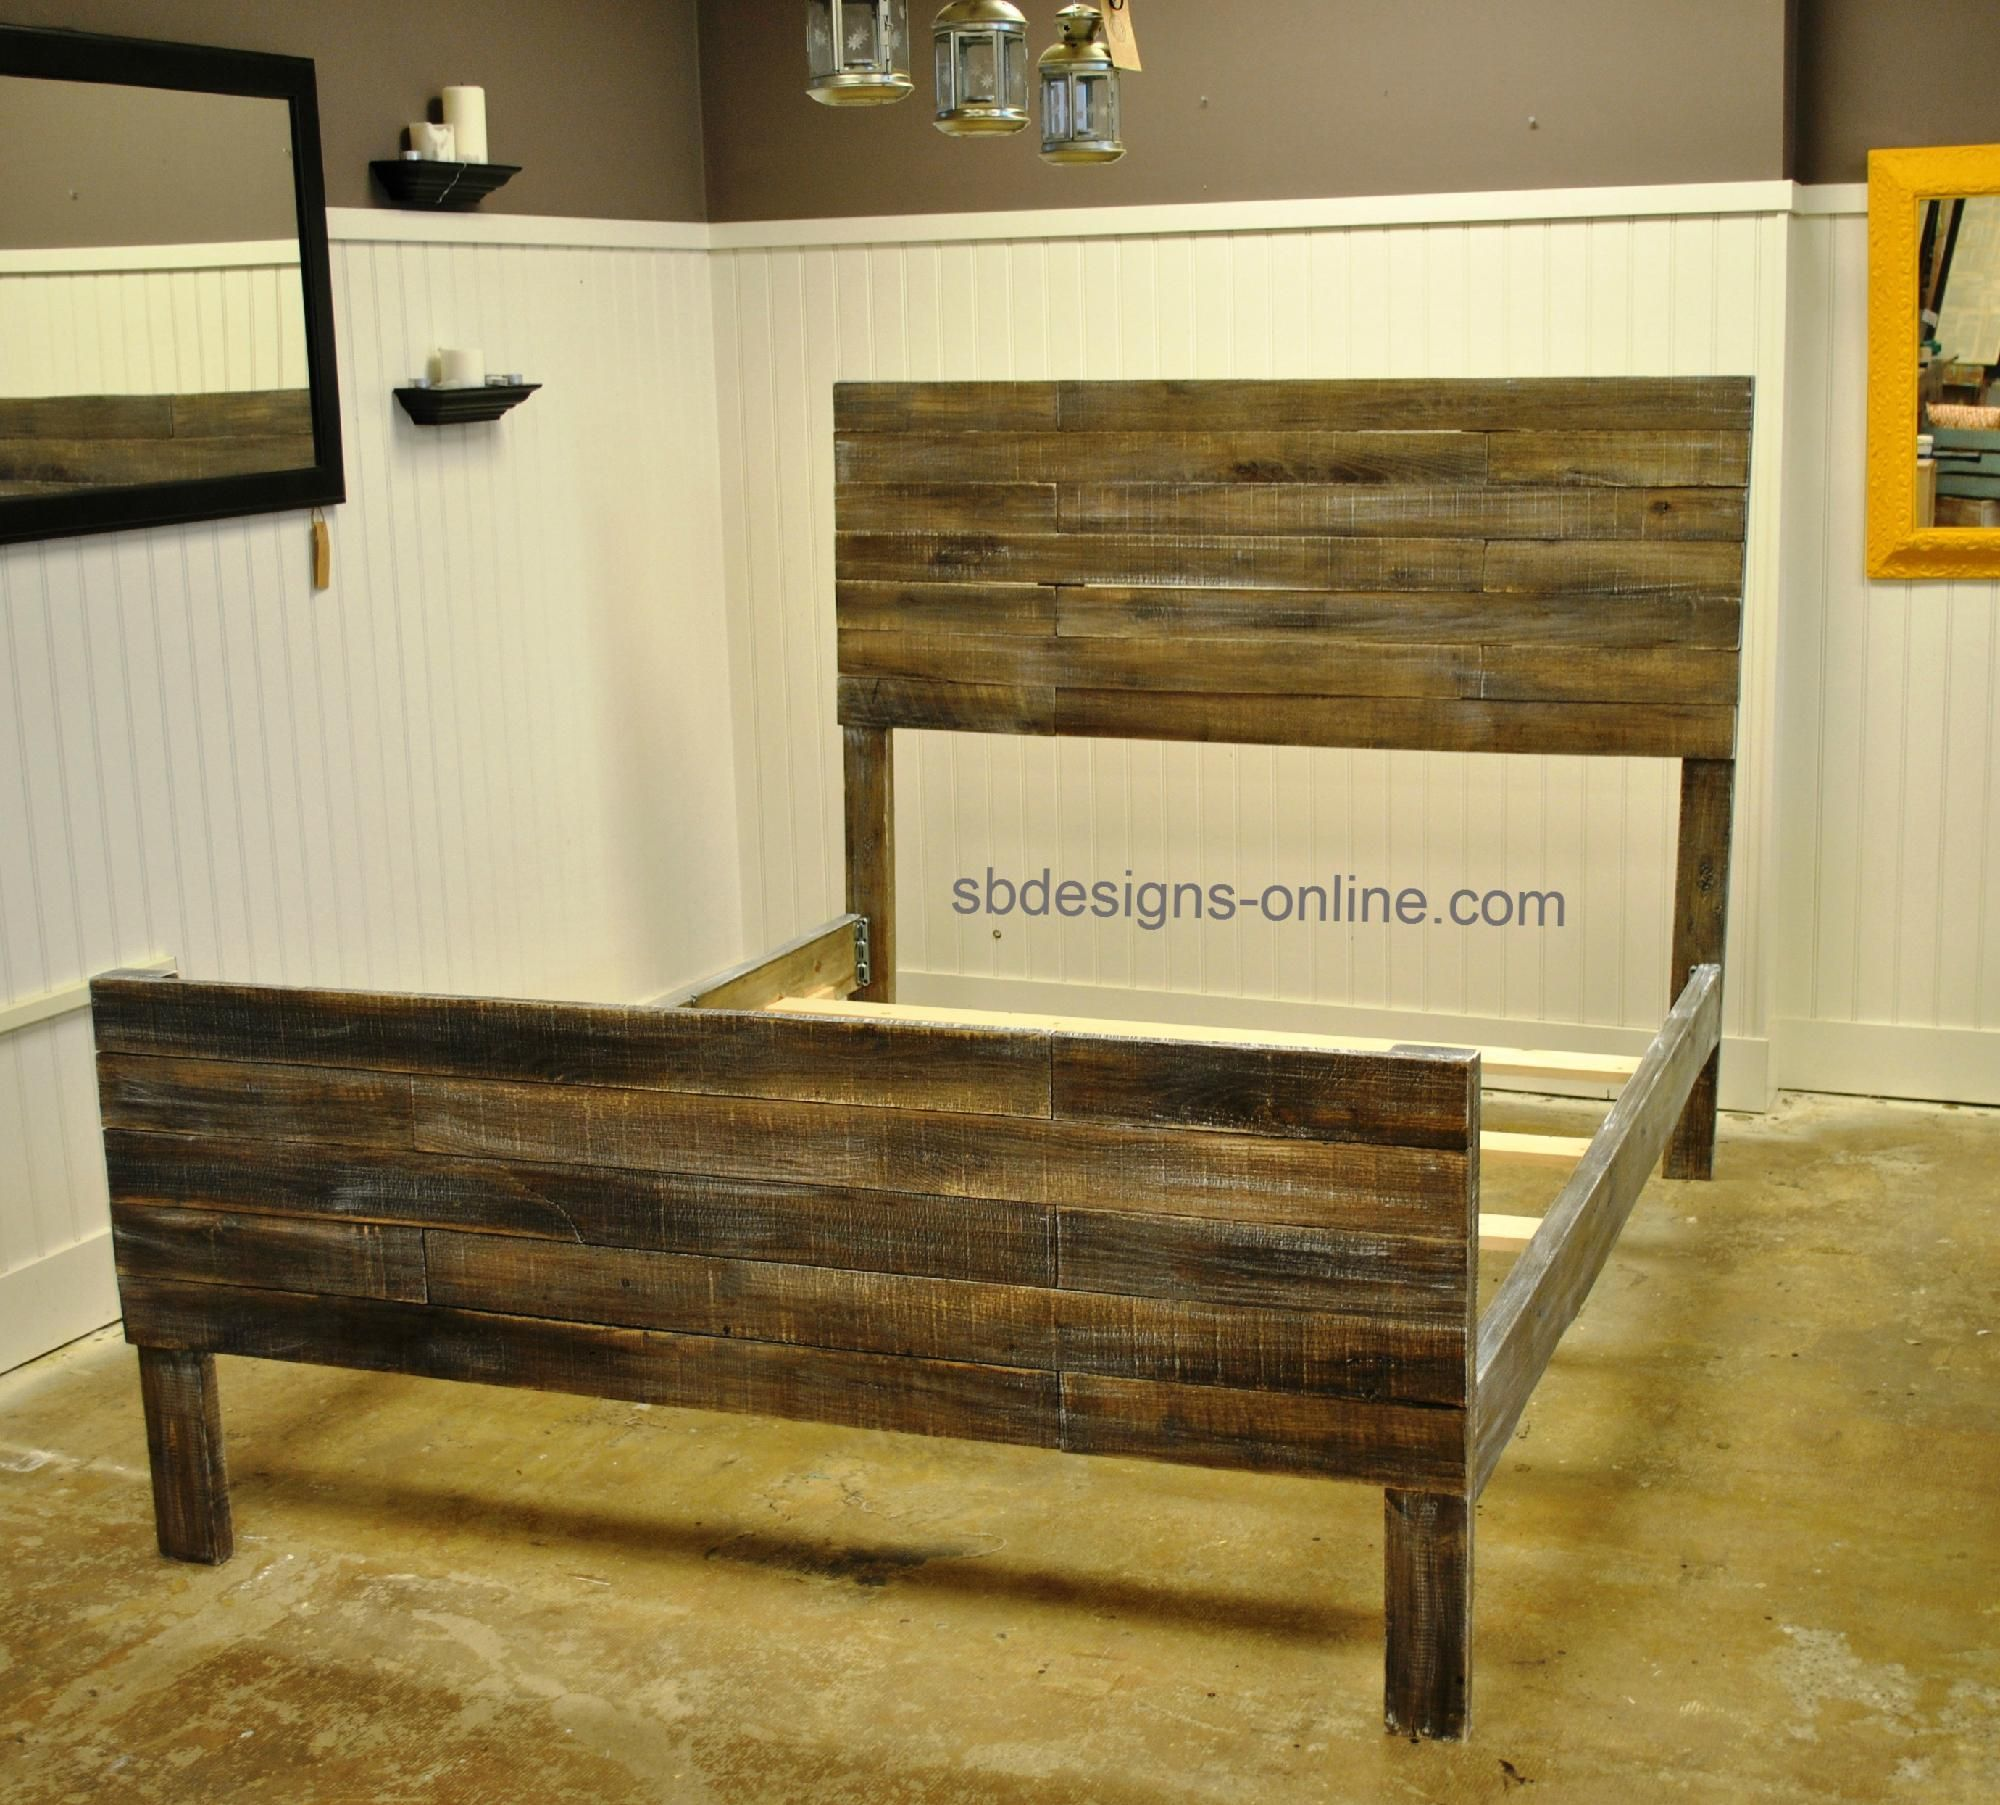 Pallet Bed Sb Designs Custom Furniture